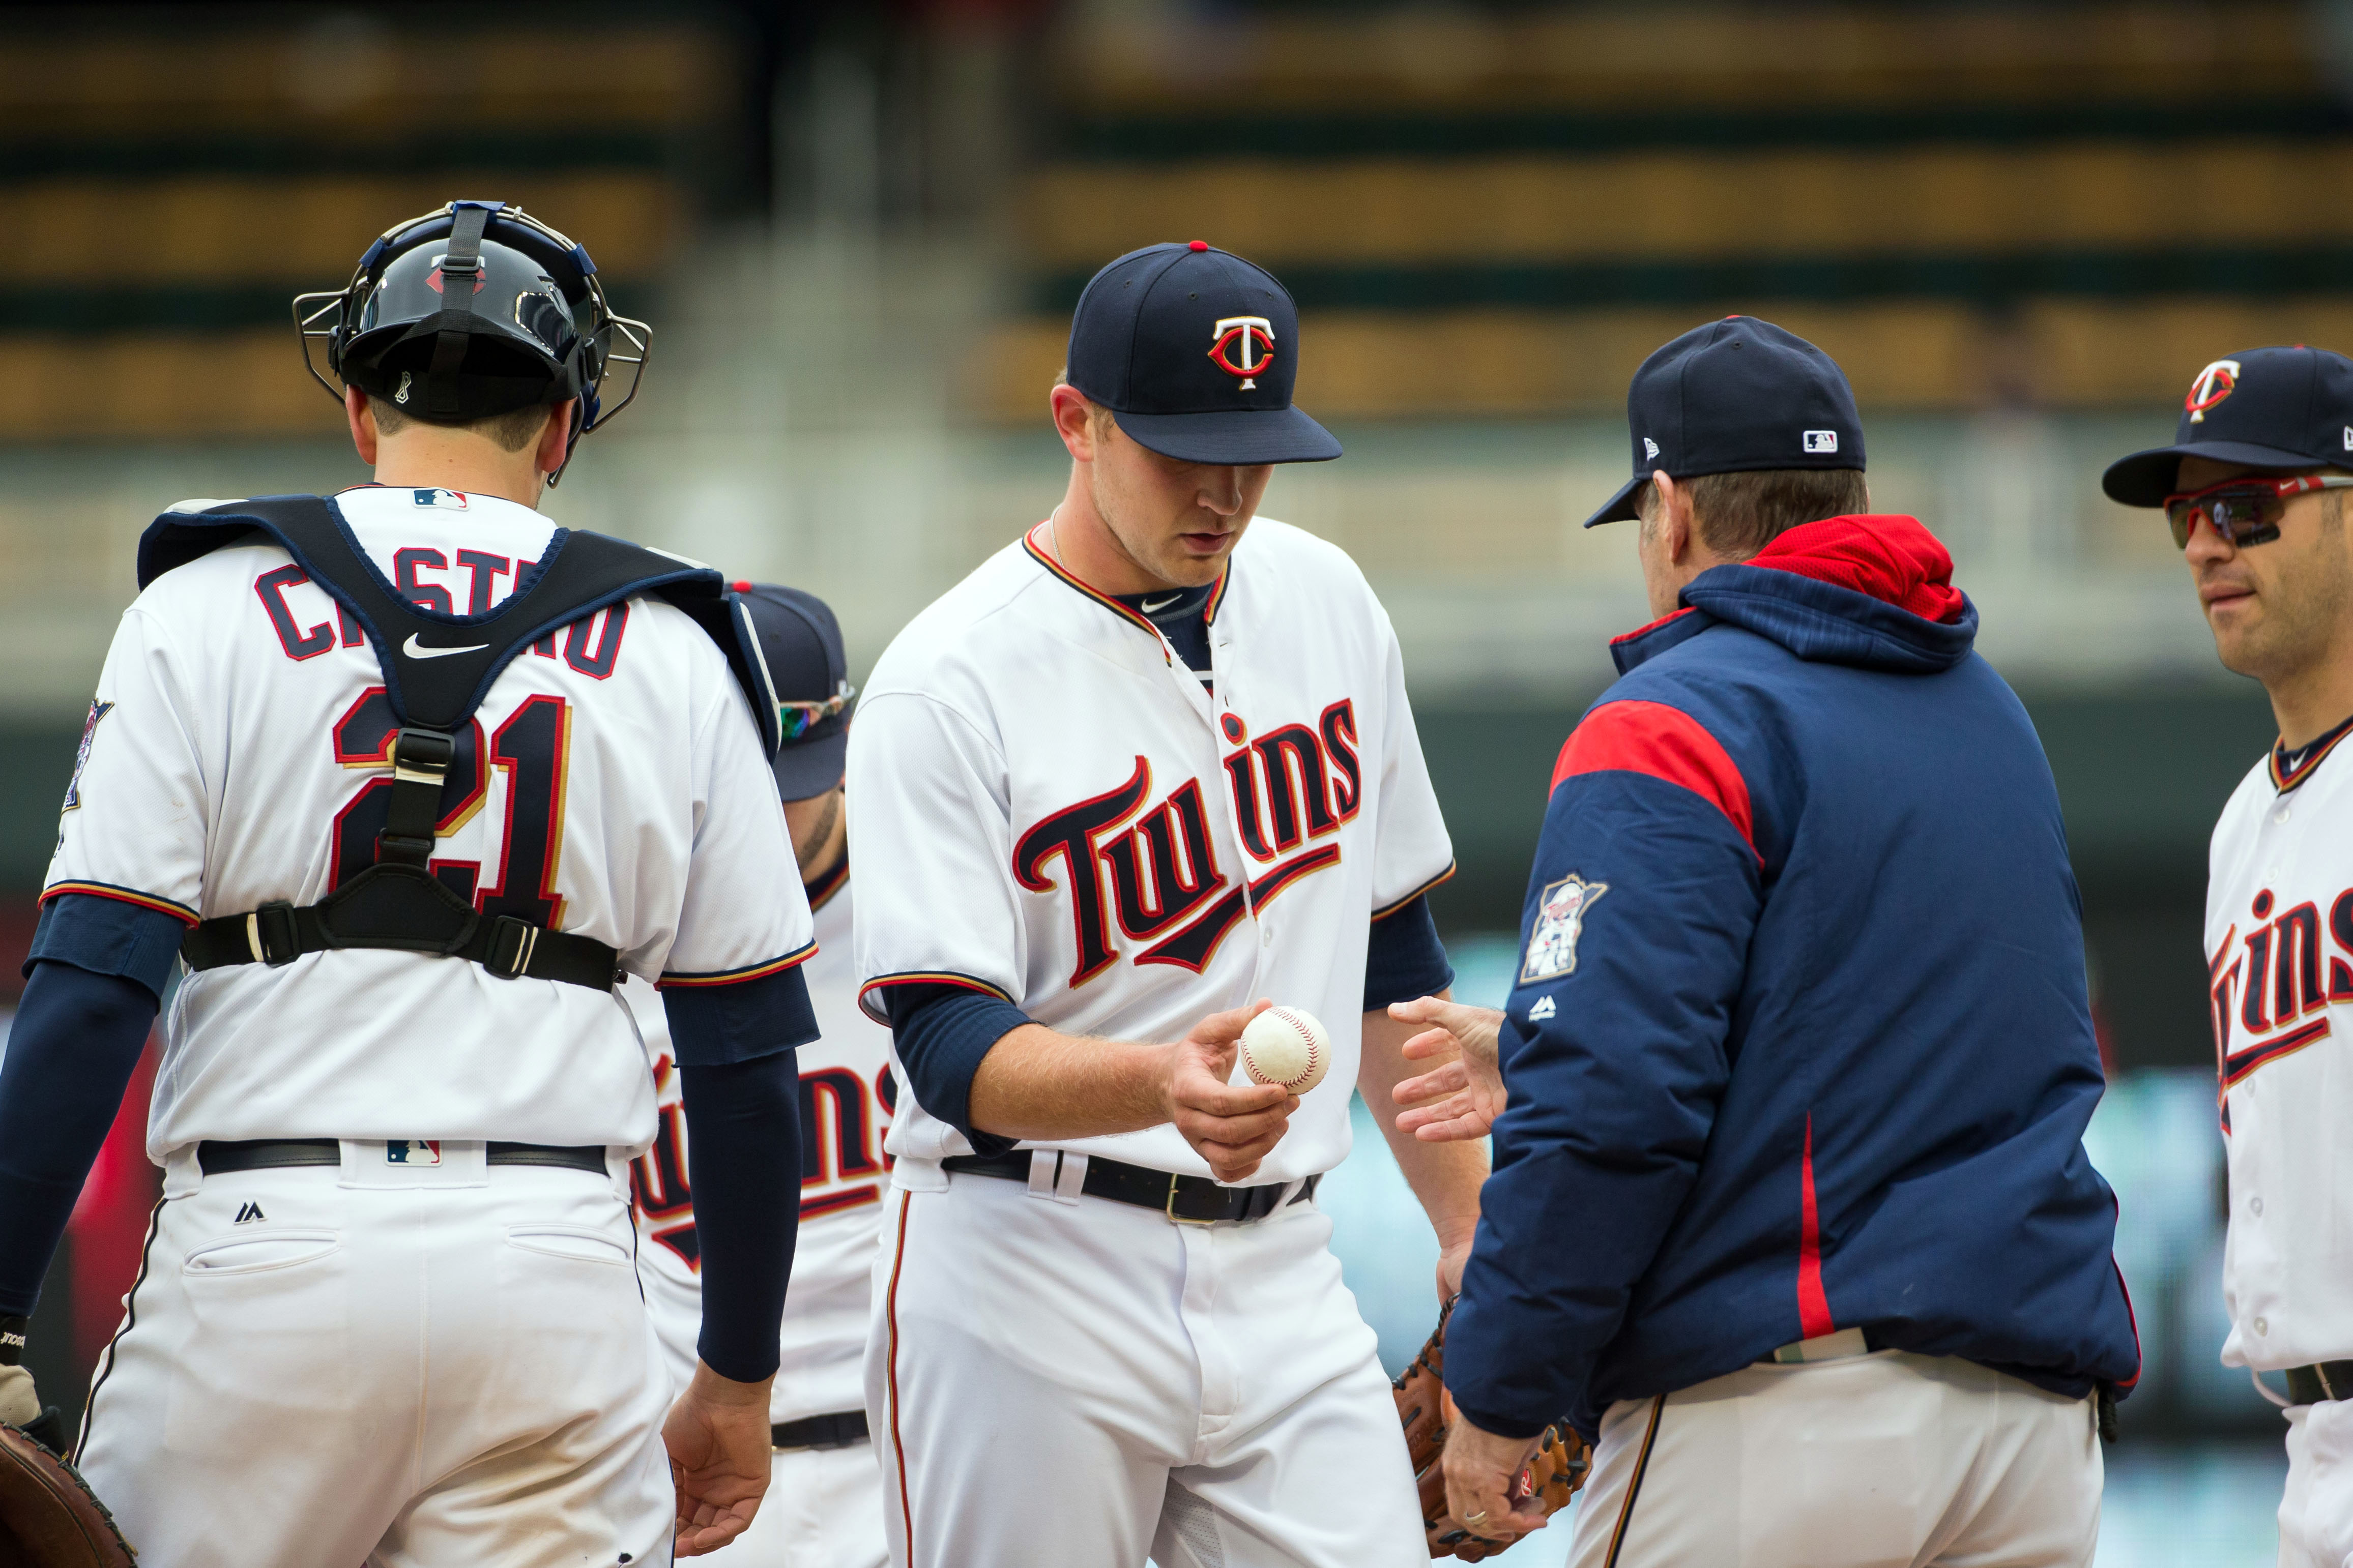 10022369-mlb-cleveland-indians-at-minnesota-twins